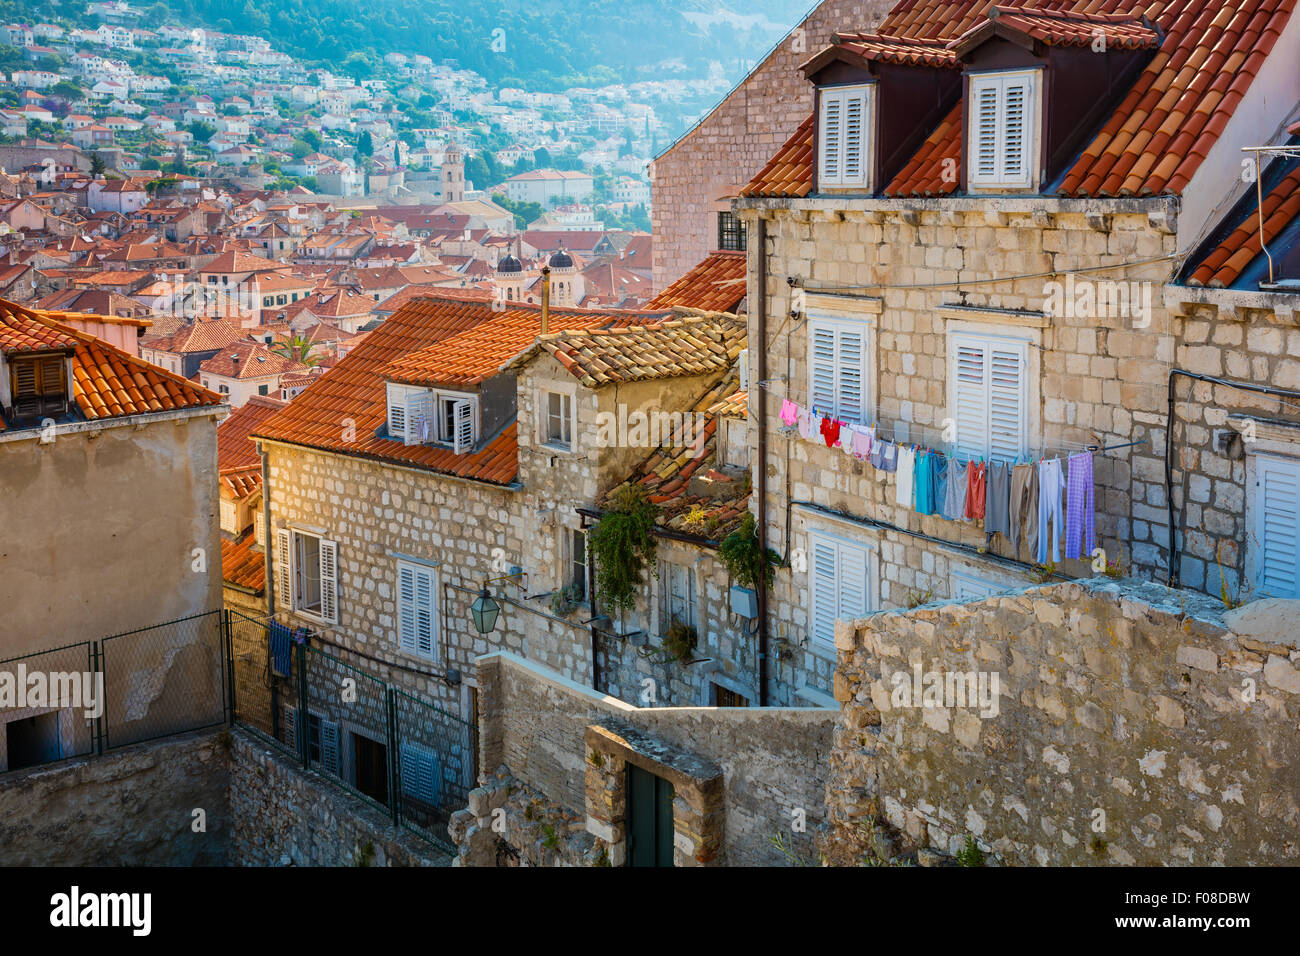 Dubrovnik, Croatia, with its characteristic medieval city walls. Dubrovnik is a Croatian city on the Adriatic Sea. - Stock Image